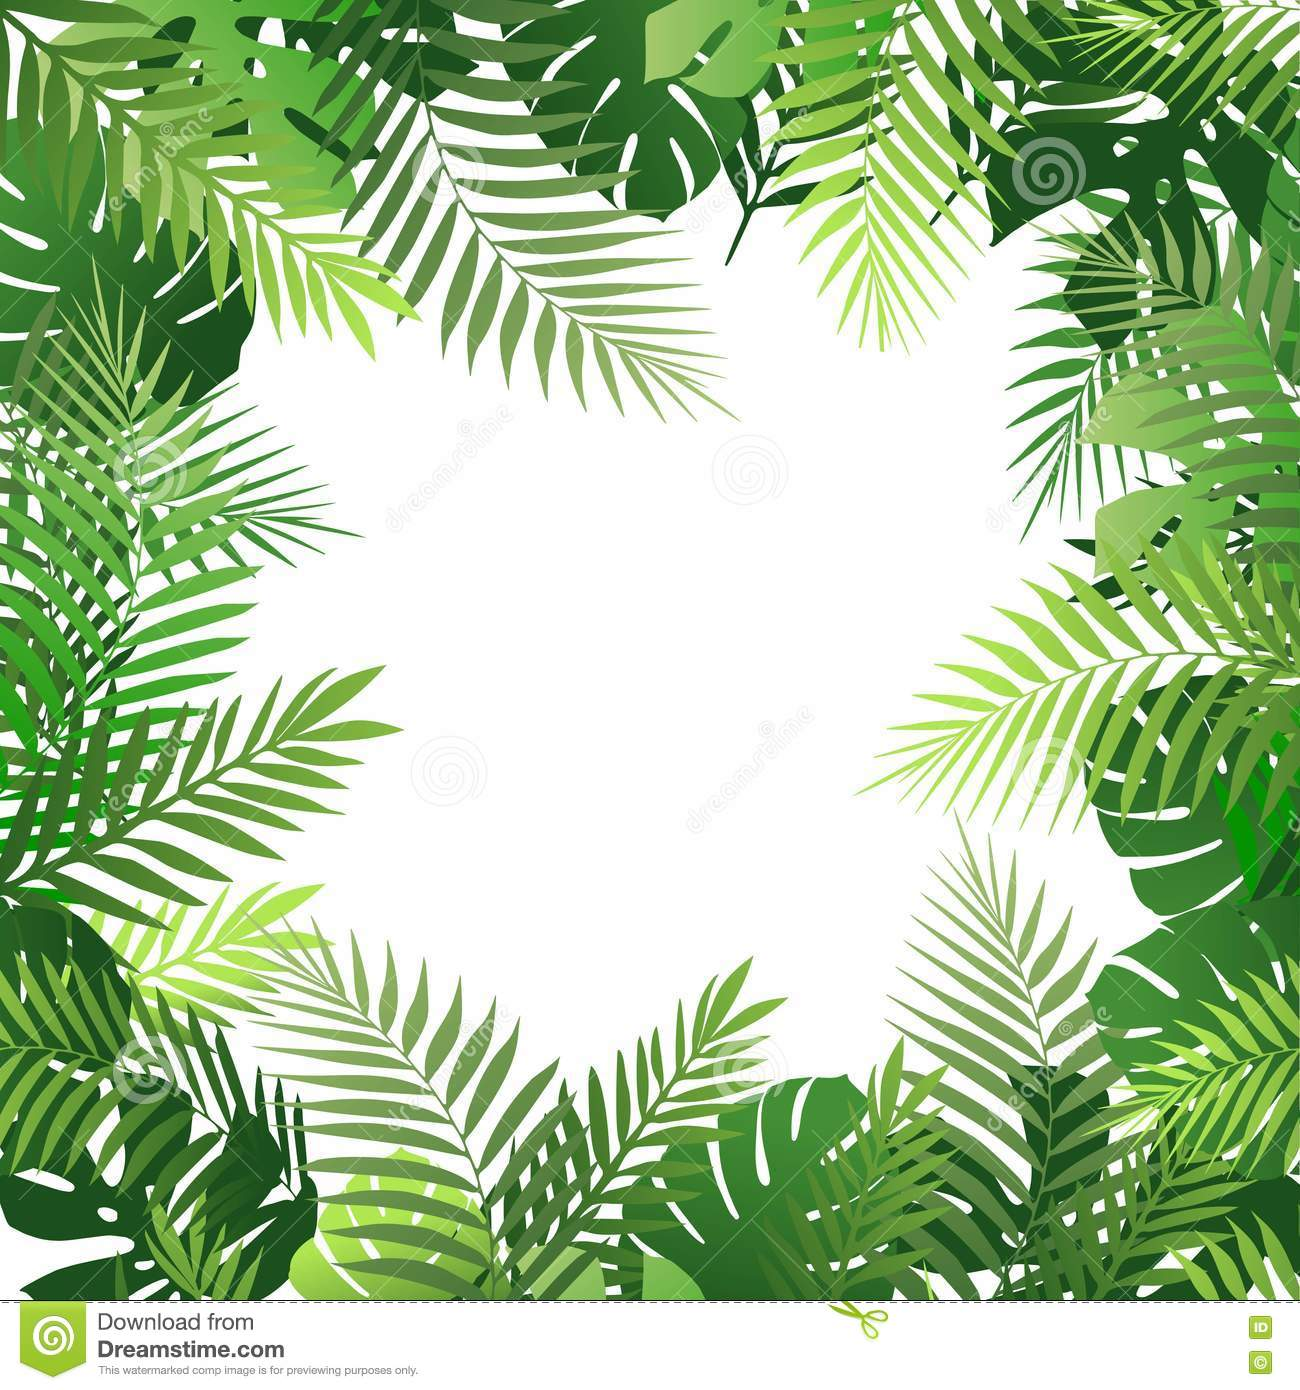 Summer Tropical Background With Palm Leaves. Exotic Wallpaper, Card, Poster, Placard, Frame ...